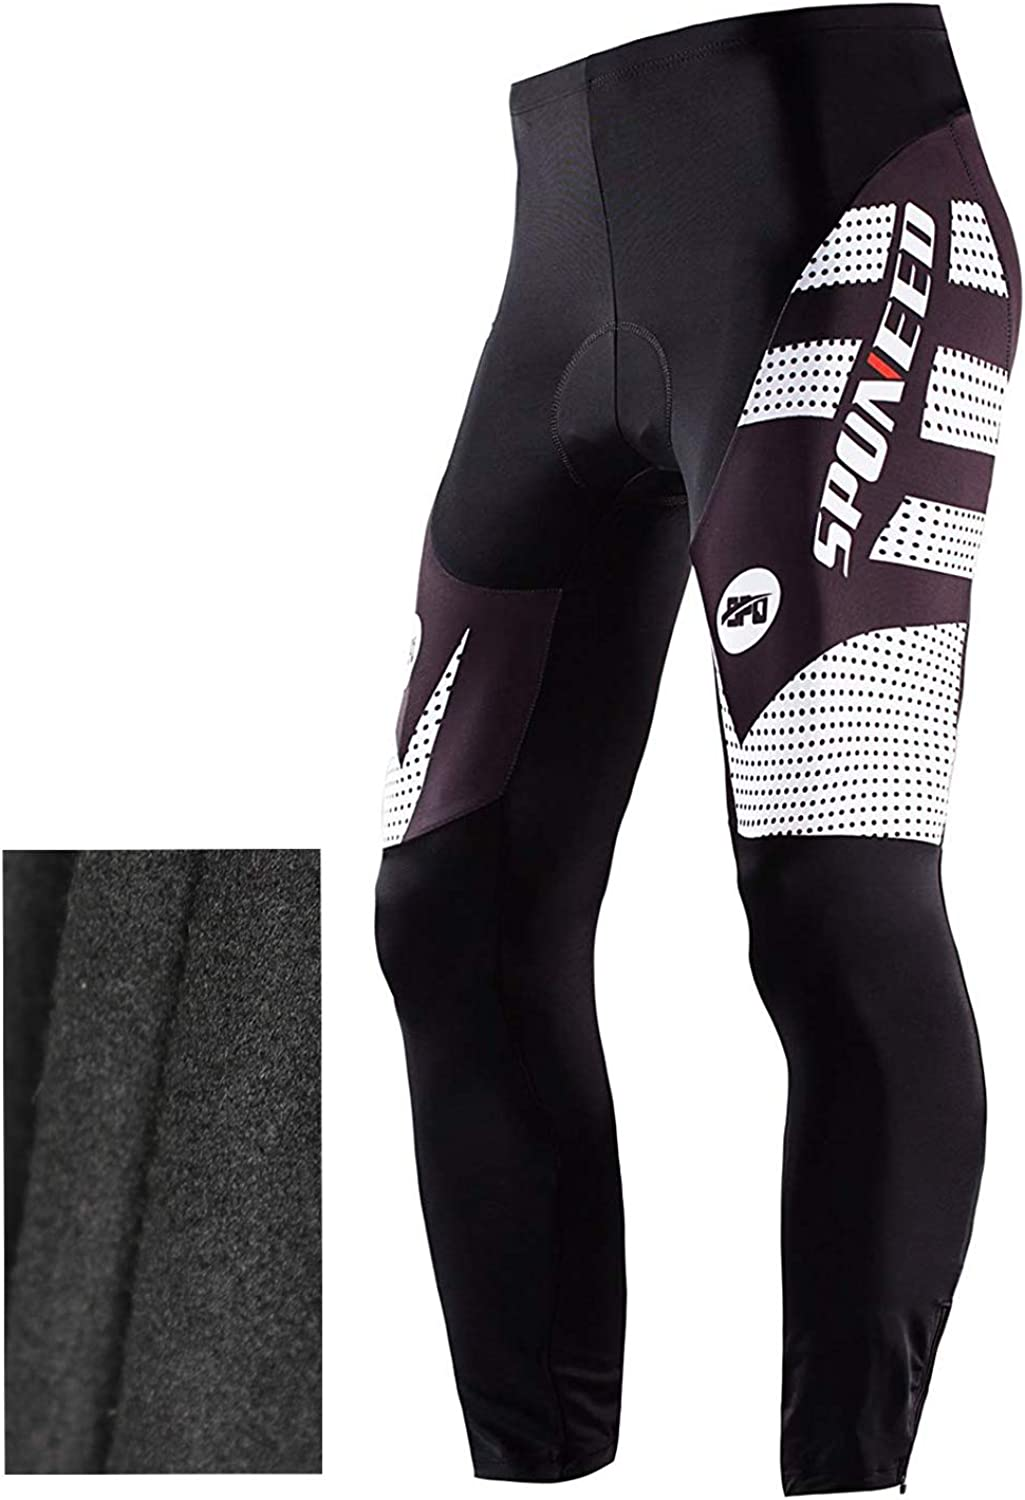 Mens Riding Bike Pants Bicycle Leggings with 4D Silicone Pad Cycle Wear M-3XL